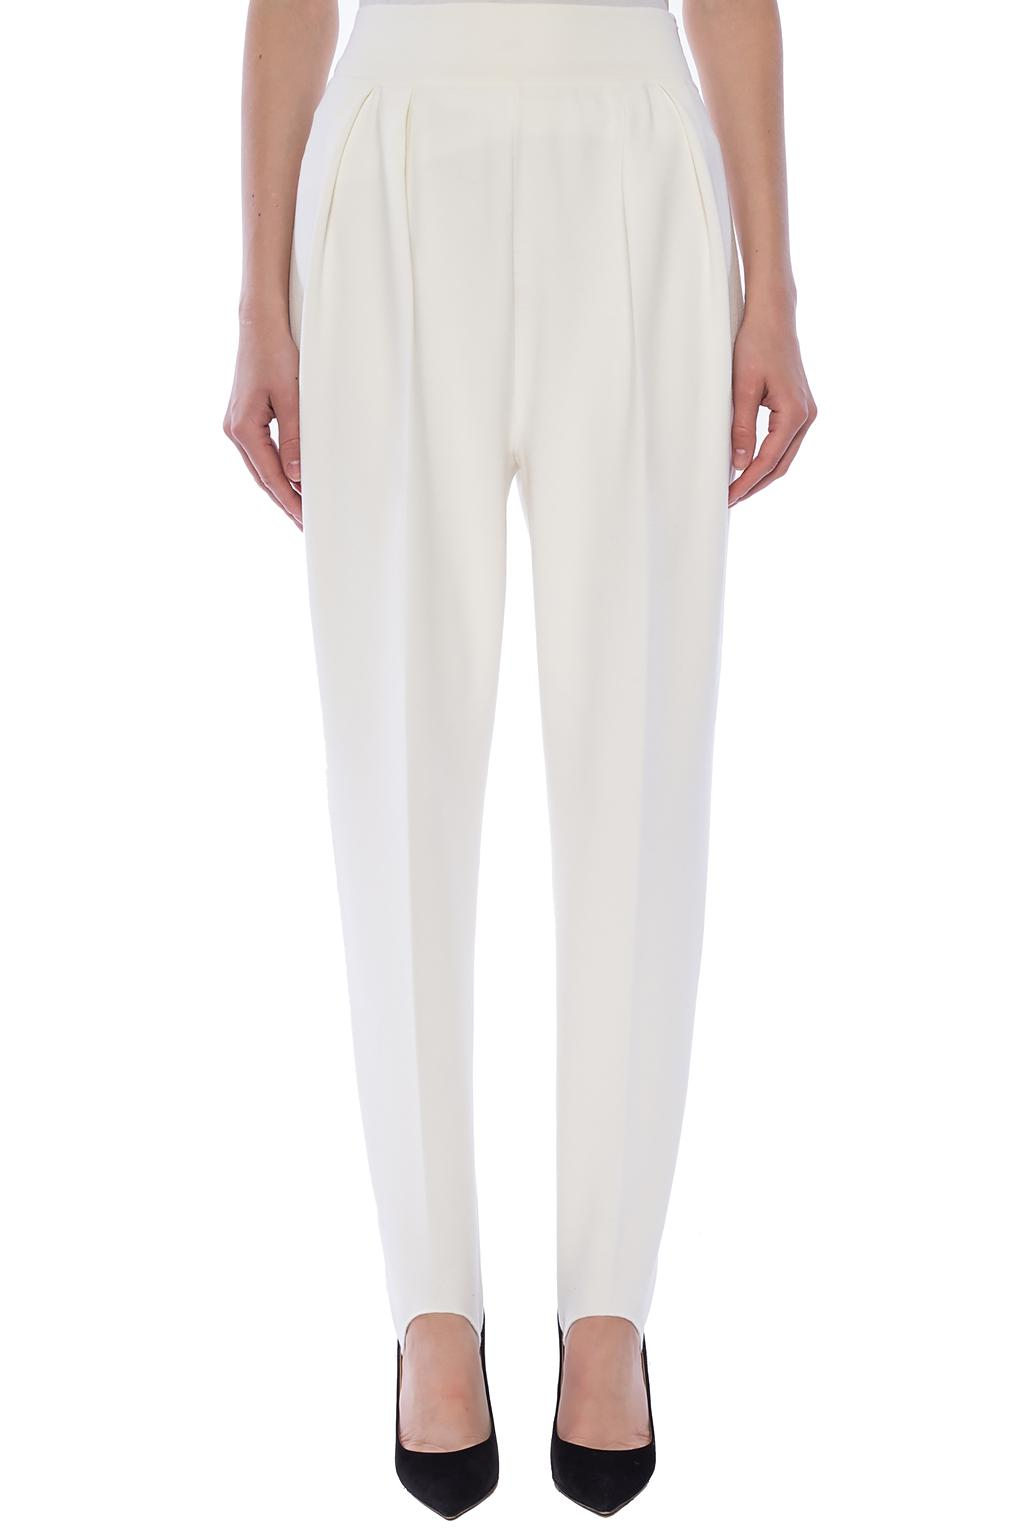 Alaia Wool trousers with vents